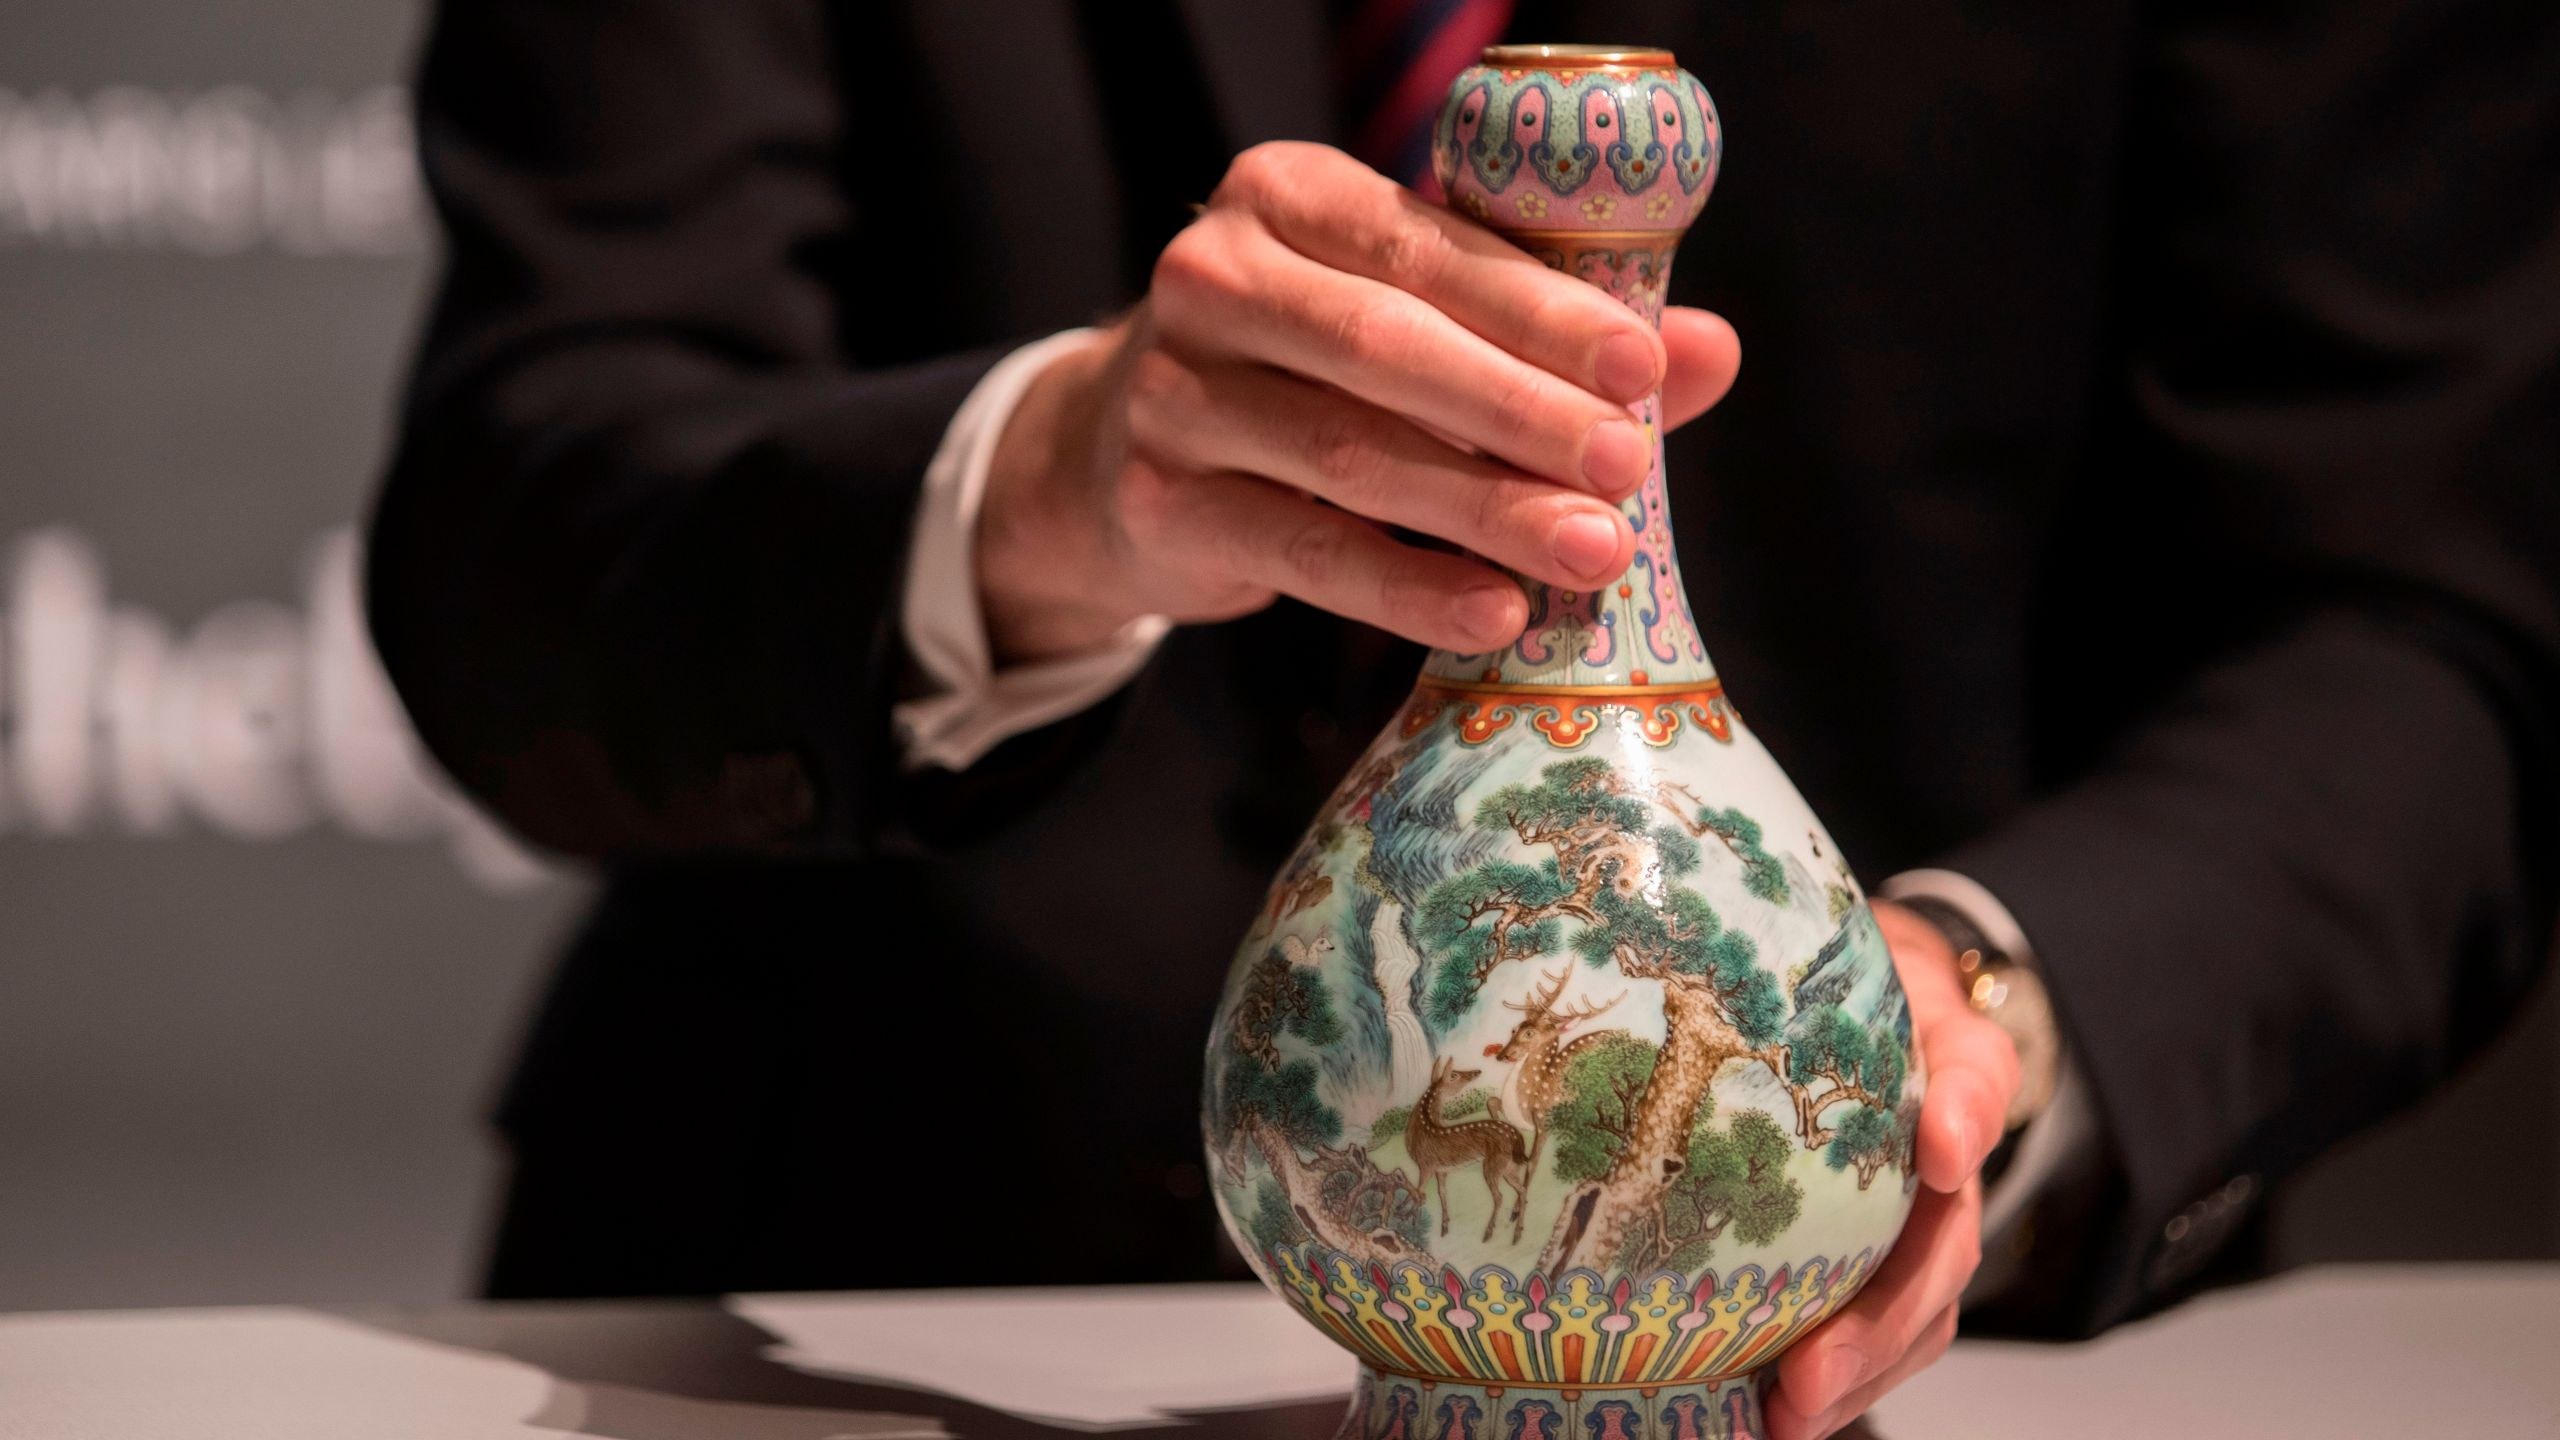 A rare Imperial Qianlong porcelain vase is displayed at Sotheby's auction company in Paris, on May 22, 2018. The vase, which was stored in a shoebox in an attic for decades, will be sold at Sotheby's Paris on June. (Credit: THOMAS SAMSON/AFP/Getty Images)